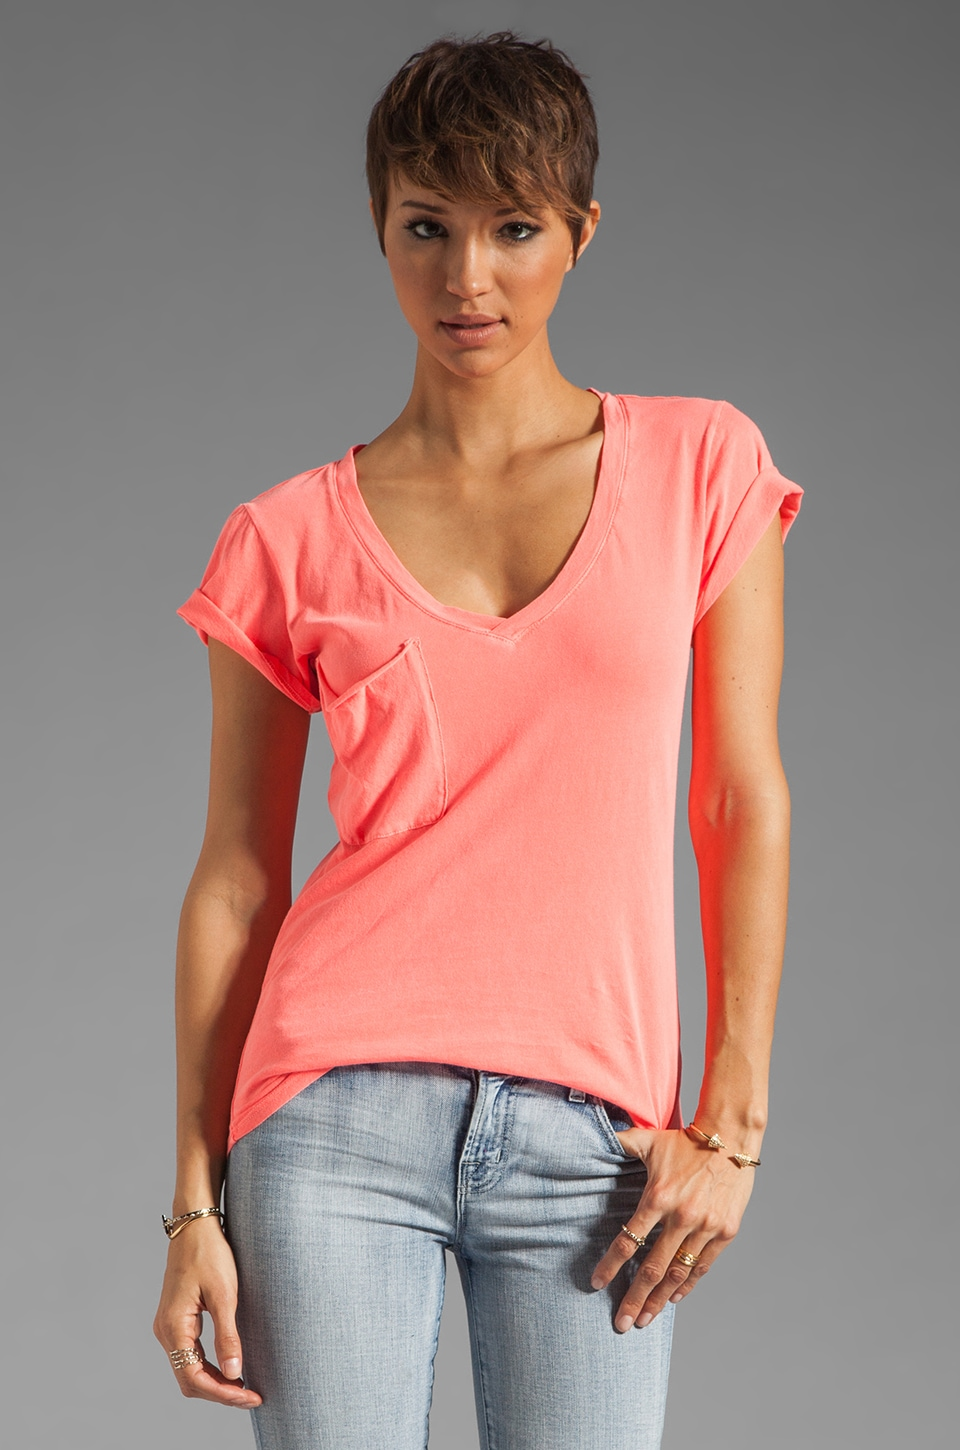 Bobi Light Weight Jersey V Pocket Tee in Neon Coral